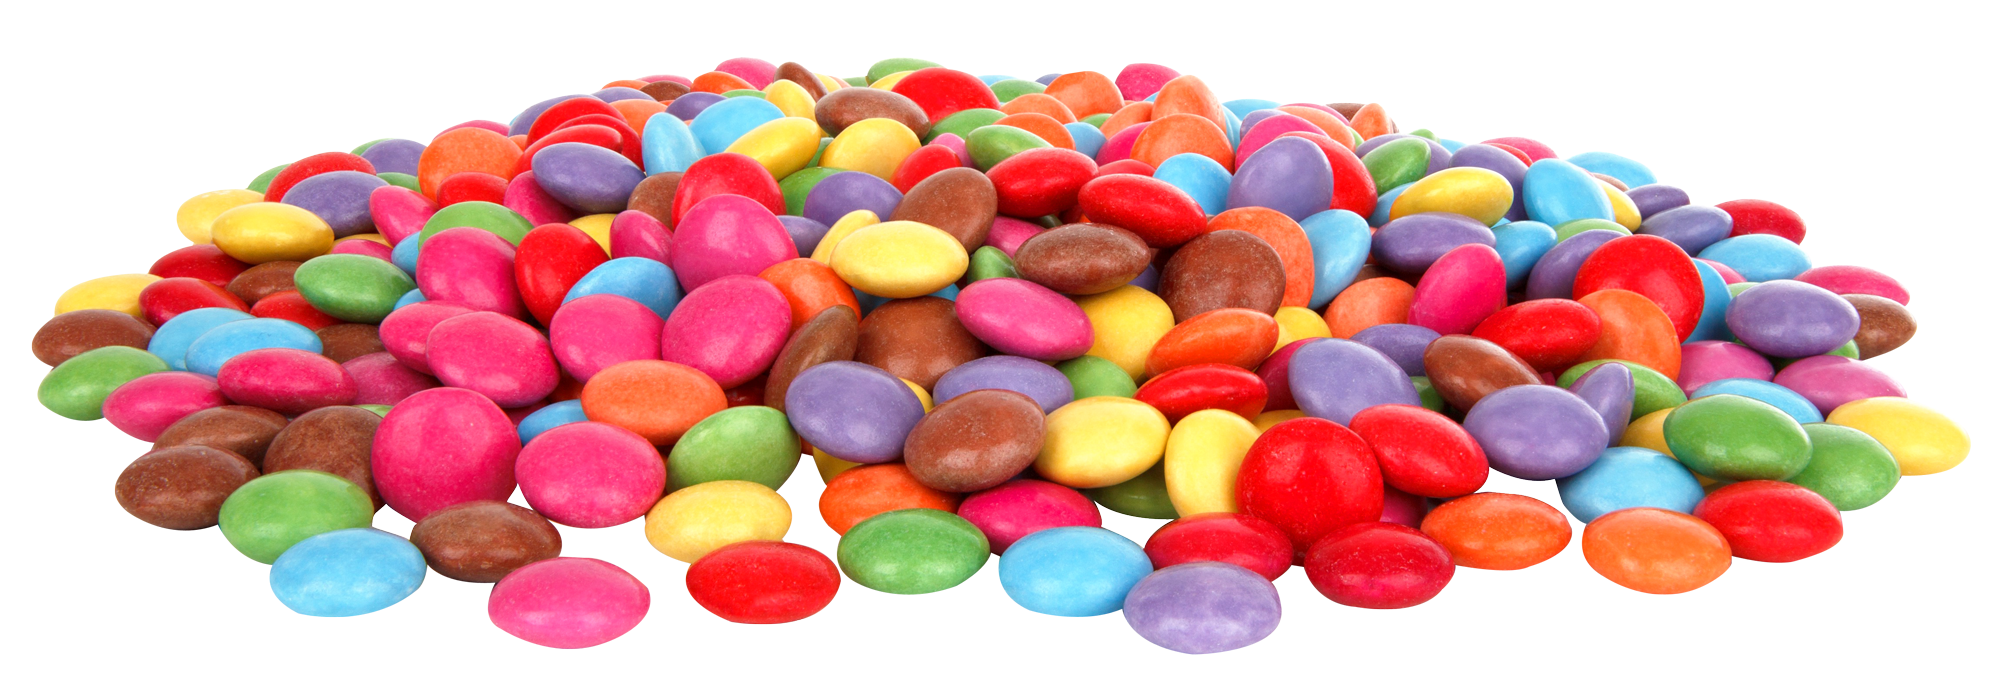 Button Candy PNG Image